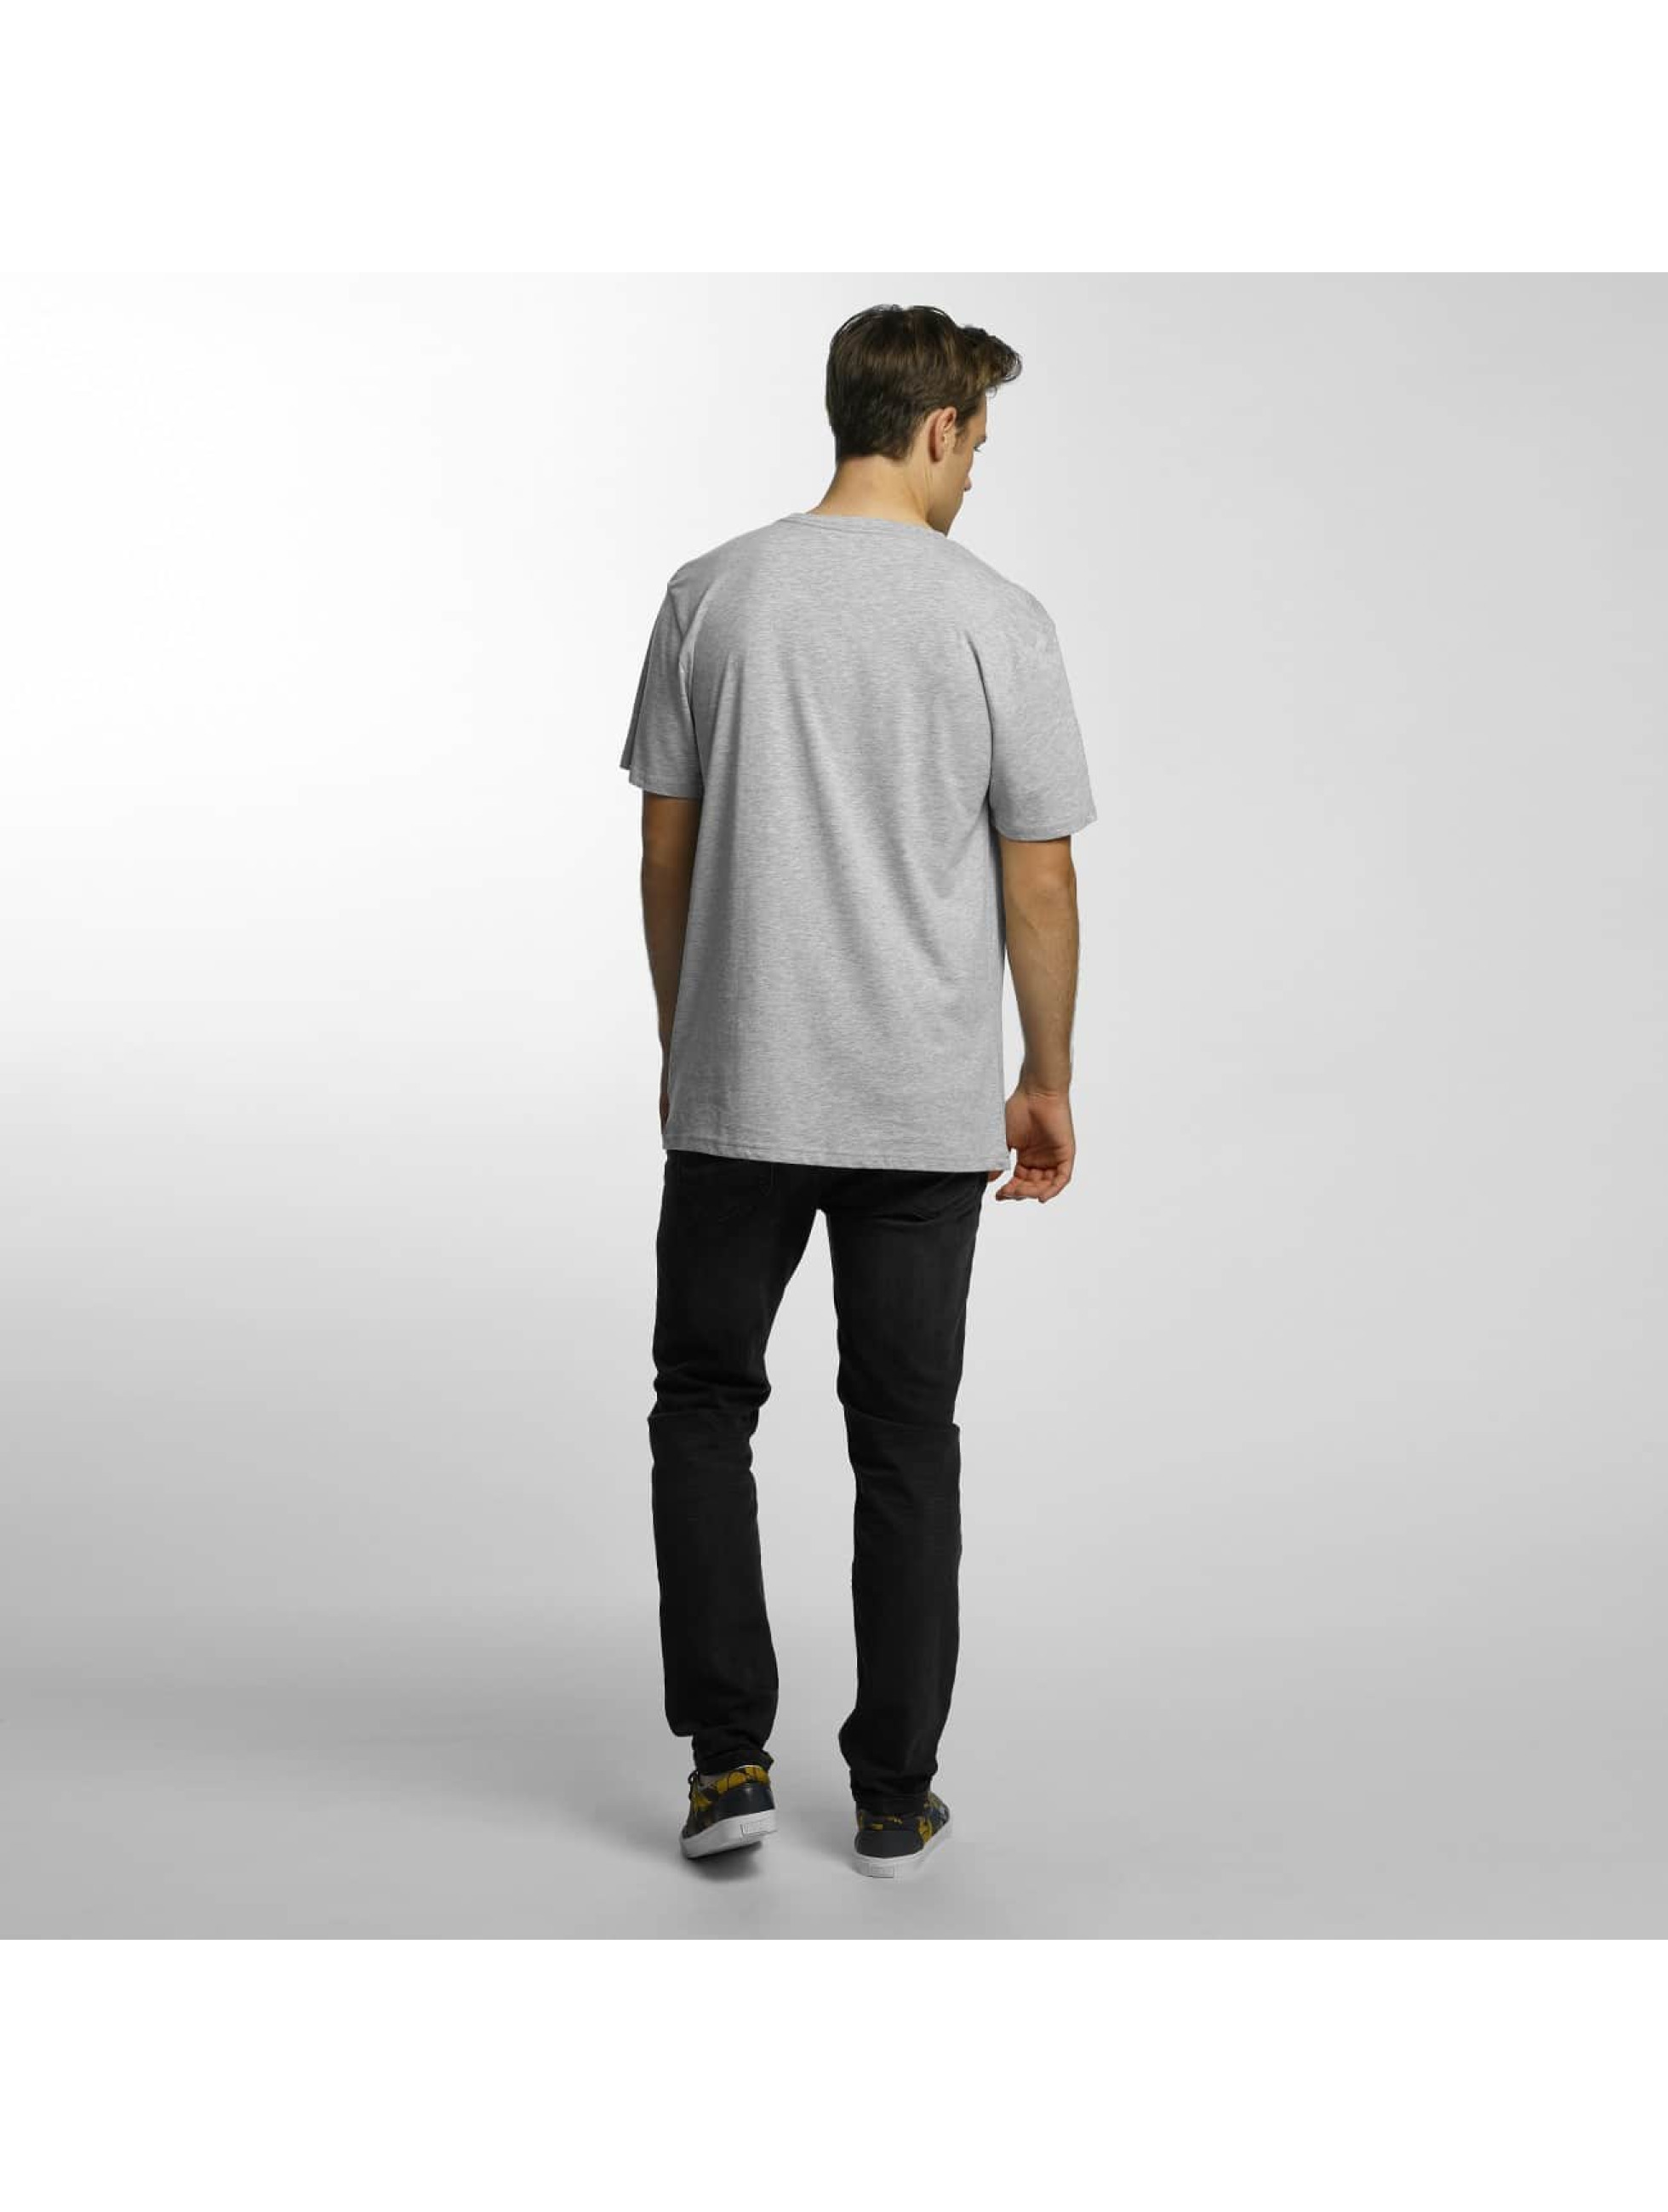 Volcom T-Shirt Burnt Basic grau